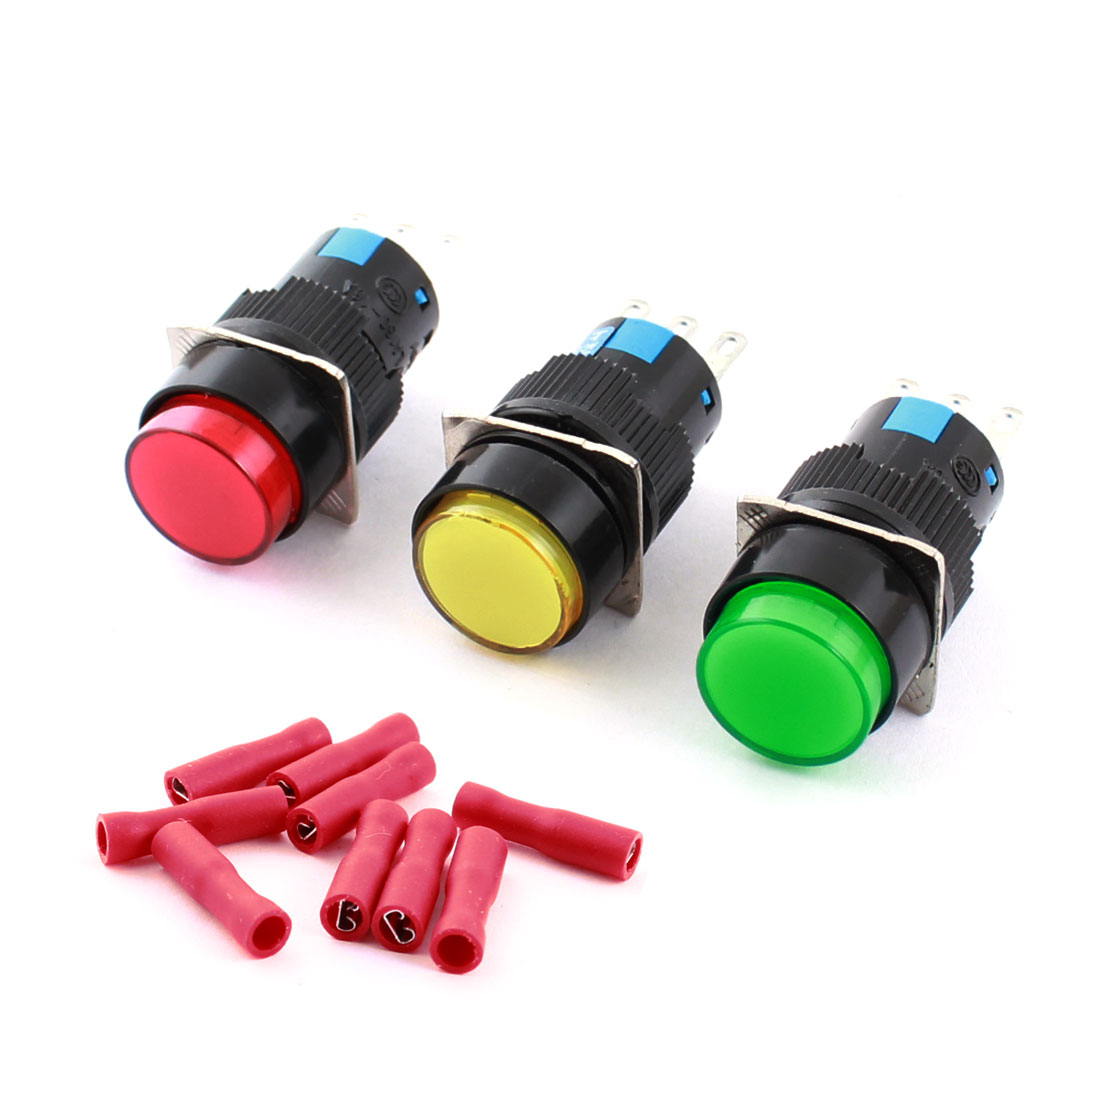 3Pcs Red Yellow Green Head 16mm Threaded Panel Mounted SPDT Latching Round Pushbutton Switch w Crimp Terminals